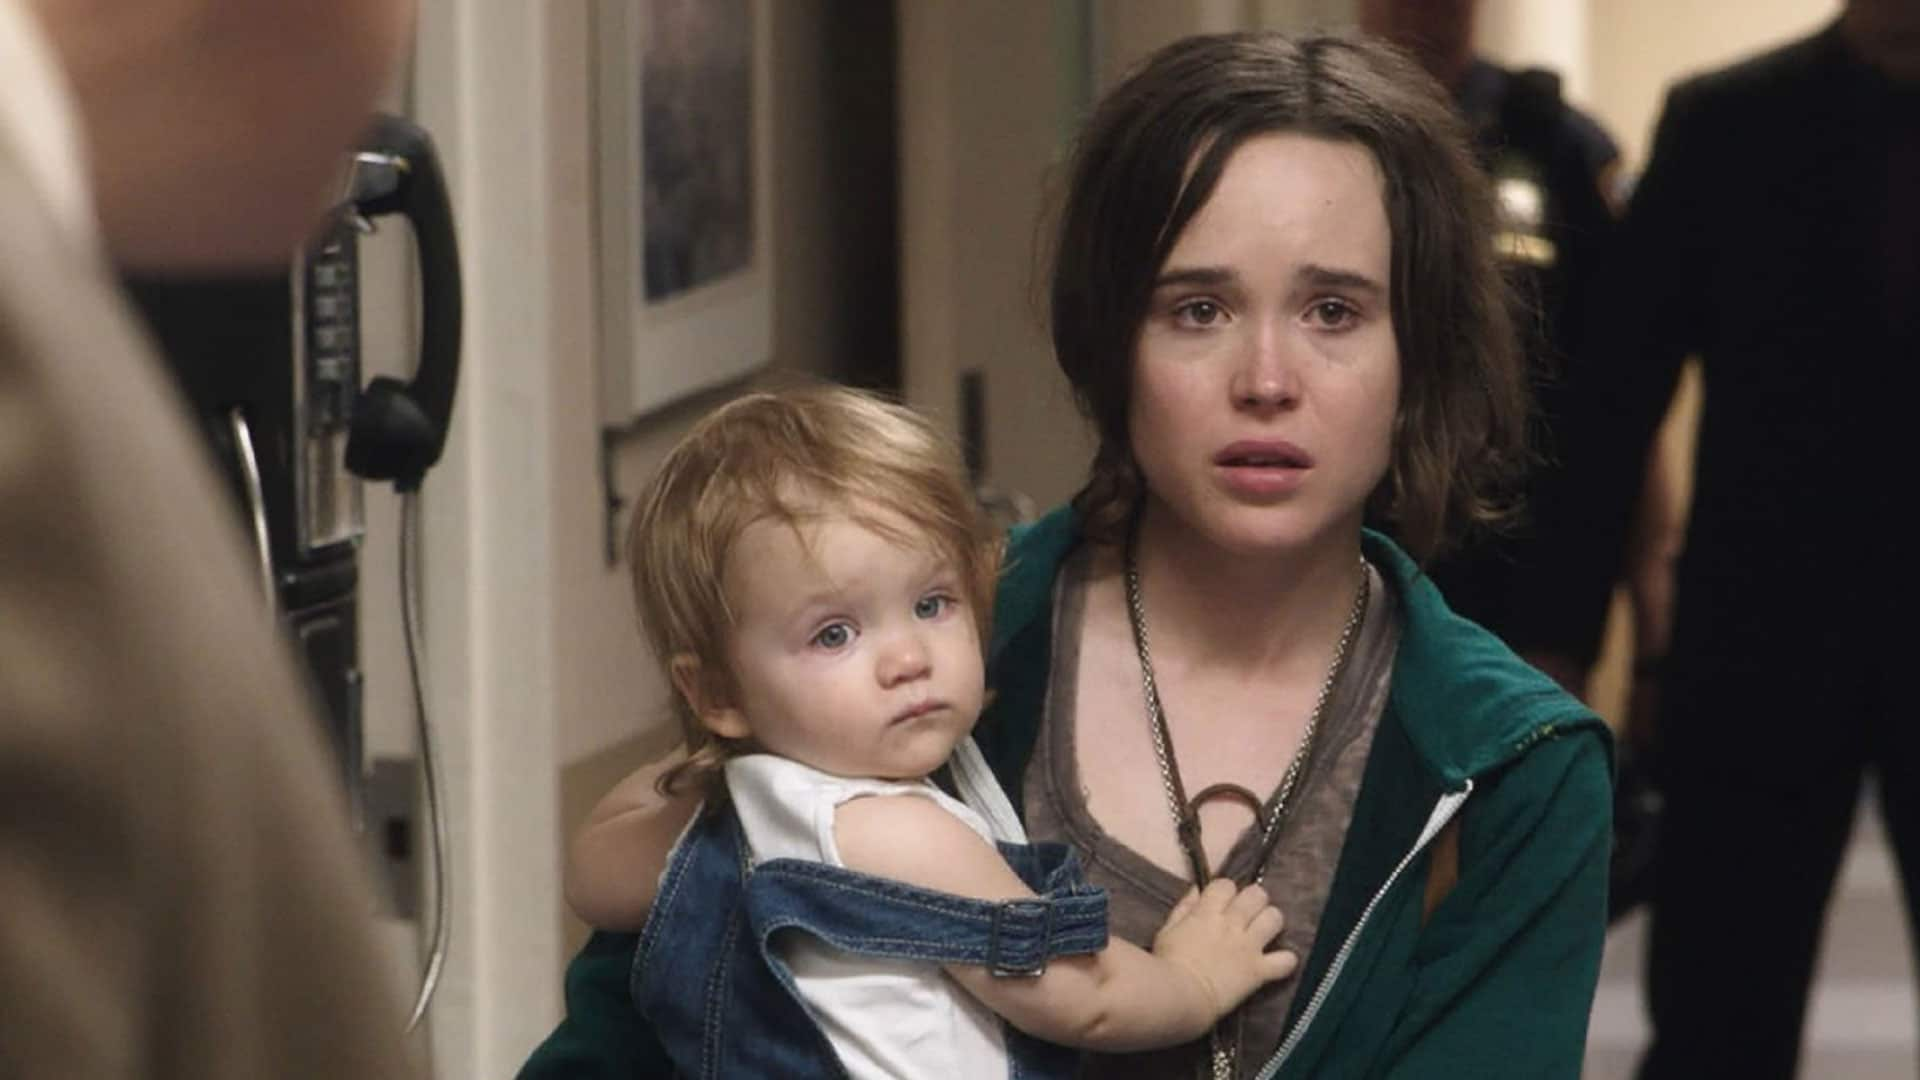 Netflix films with strong female leads: Tallulah